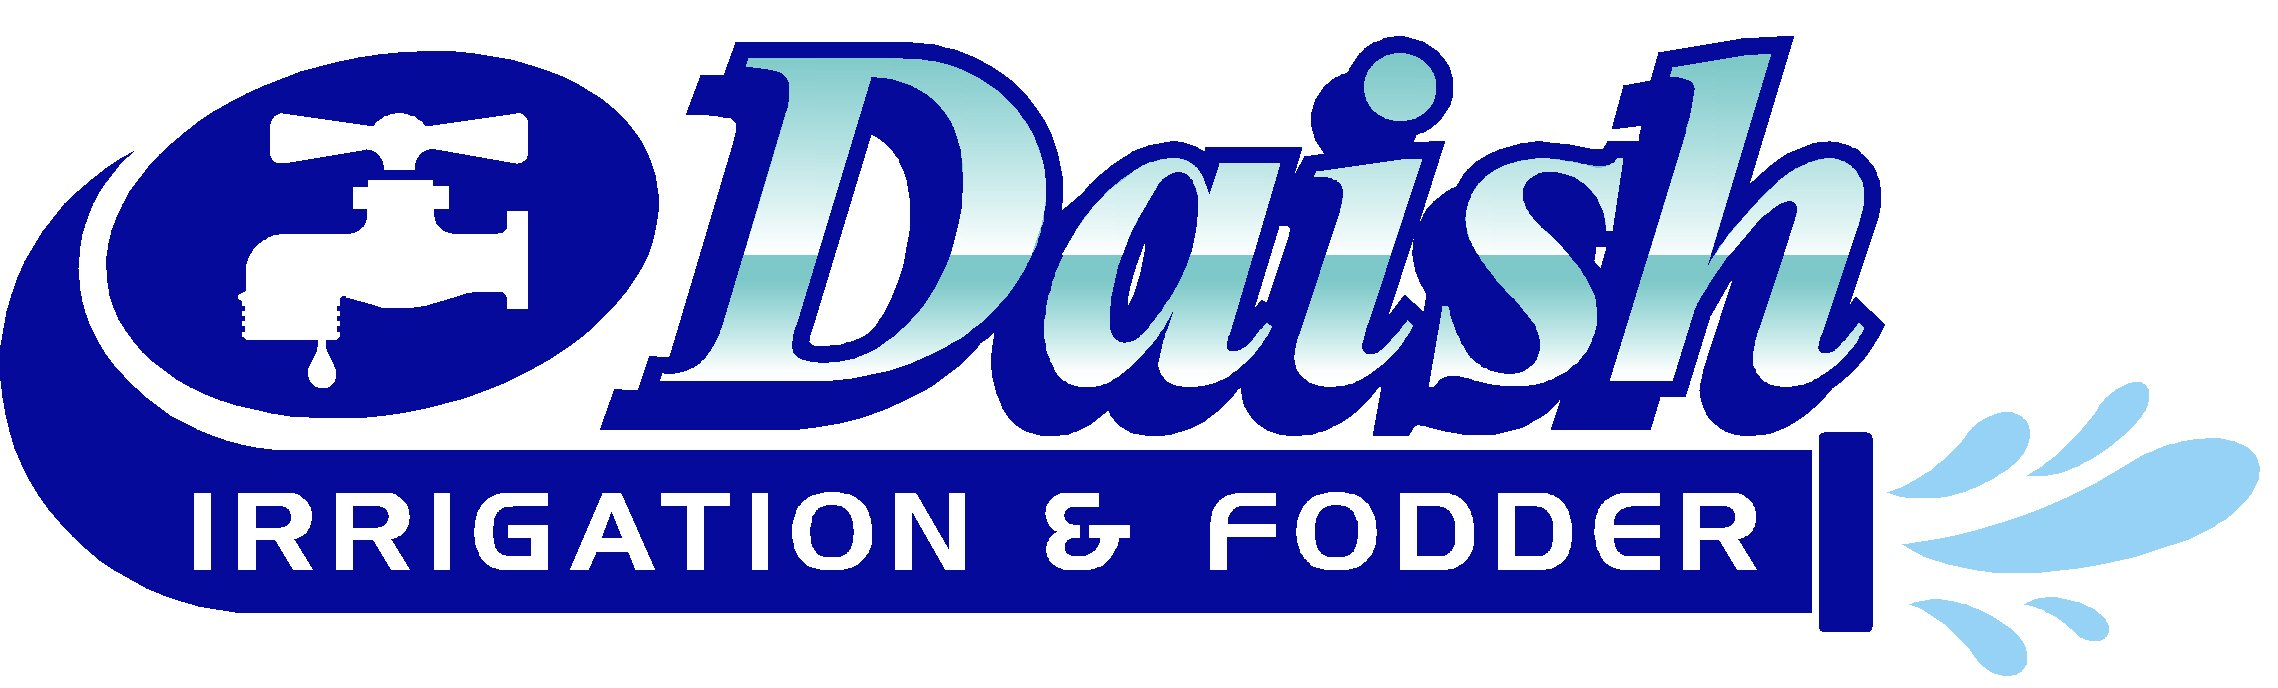 daish irrigation and fodder logo